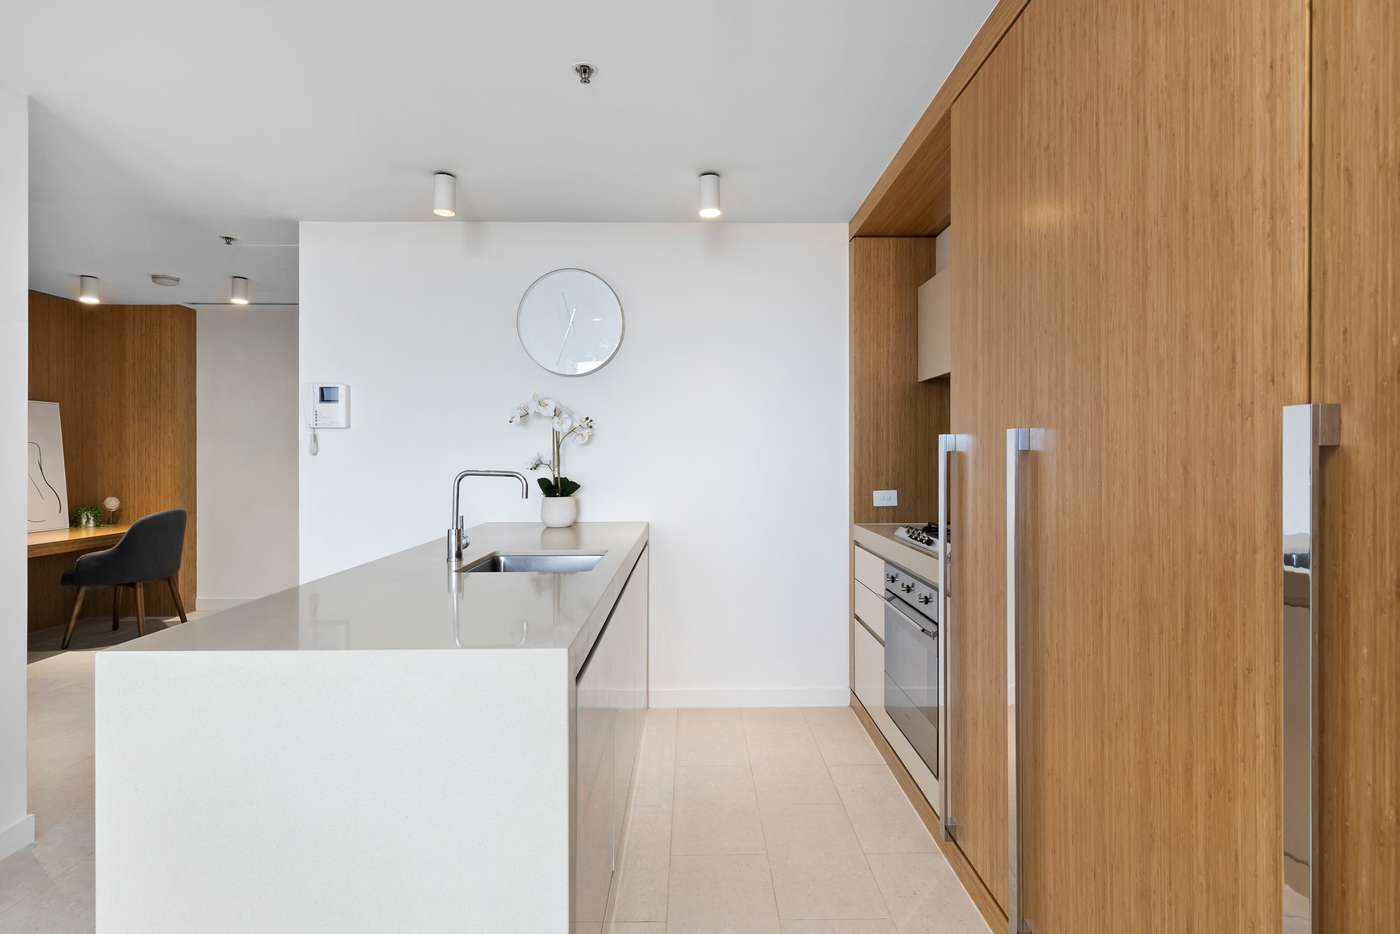 Main view of Homely apartment listing, 1011/1 Clara Street, South Yarra VIC 3141